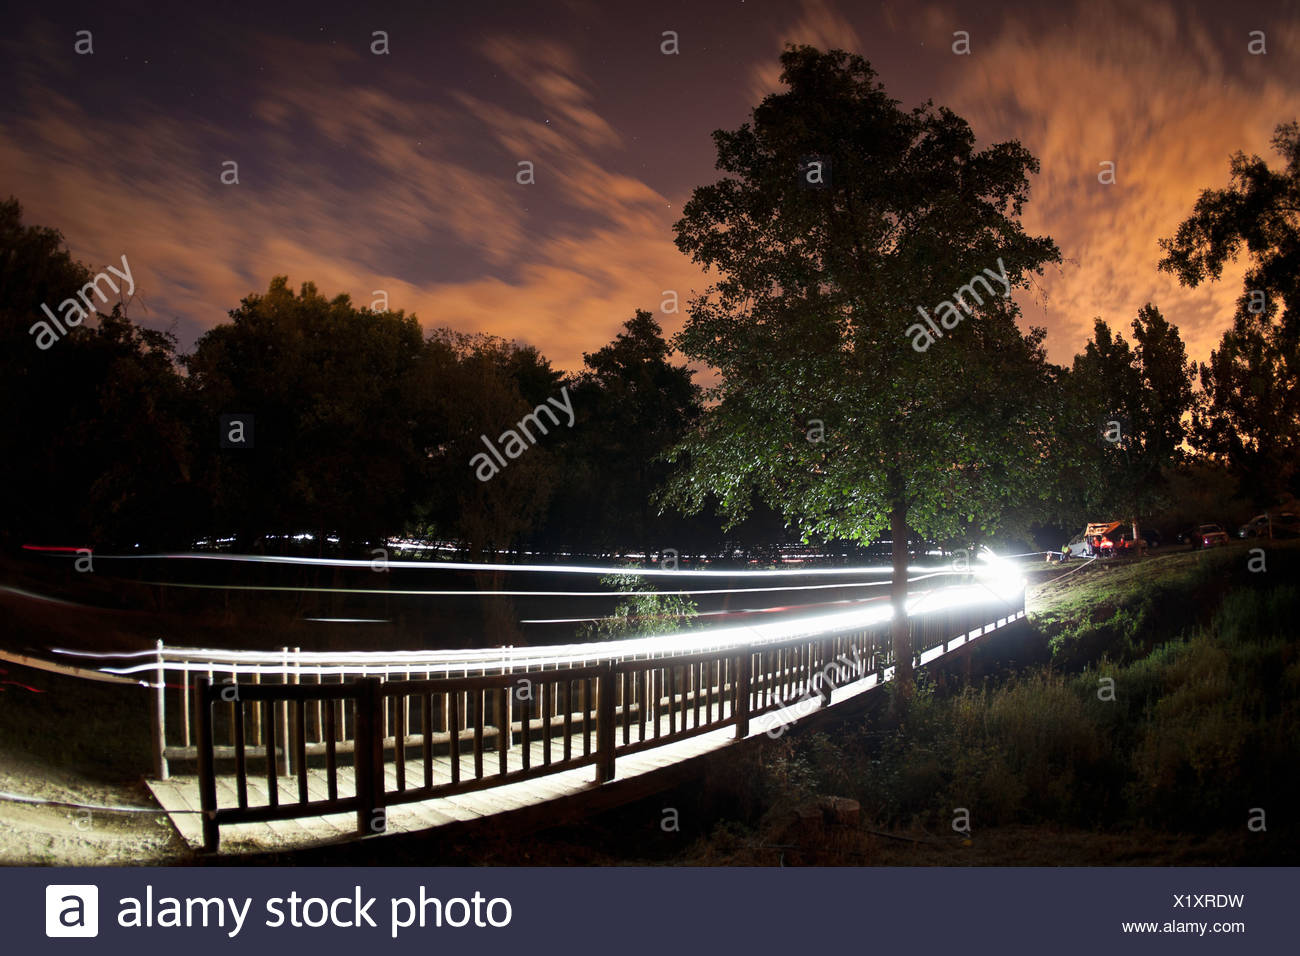 Trails of light from mountain bikers - Stock Image